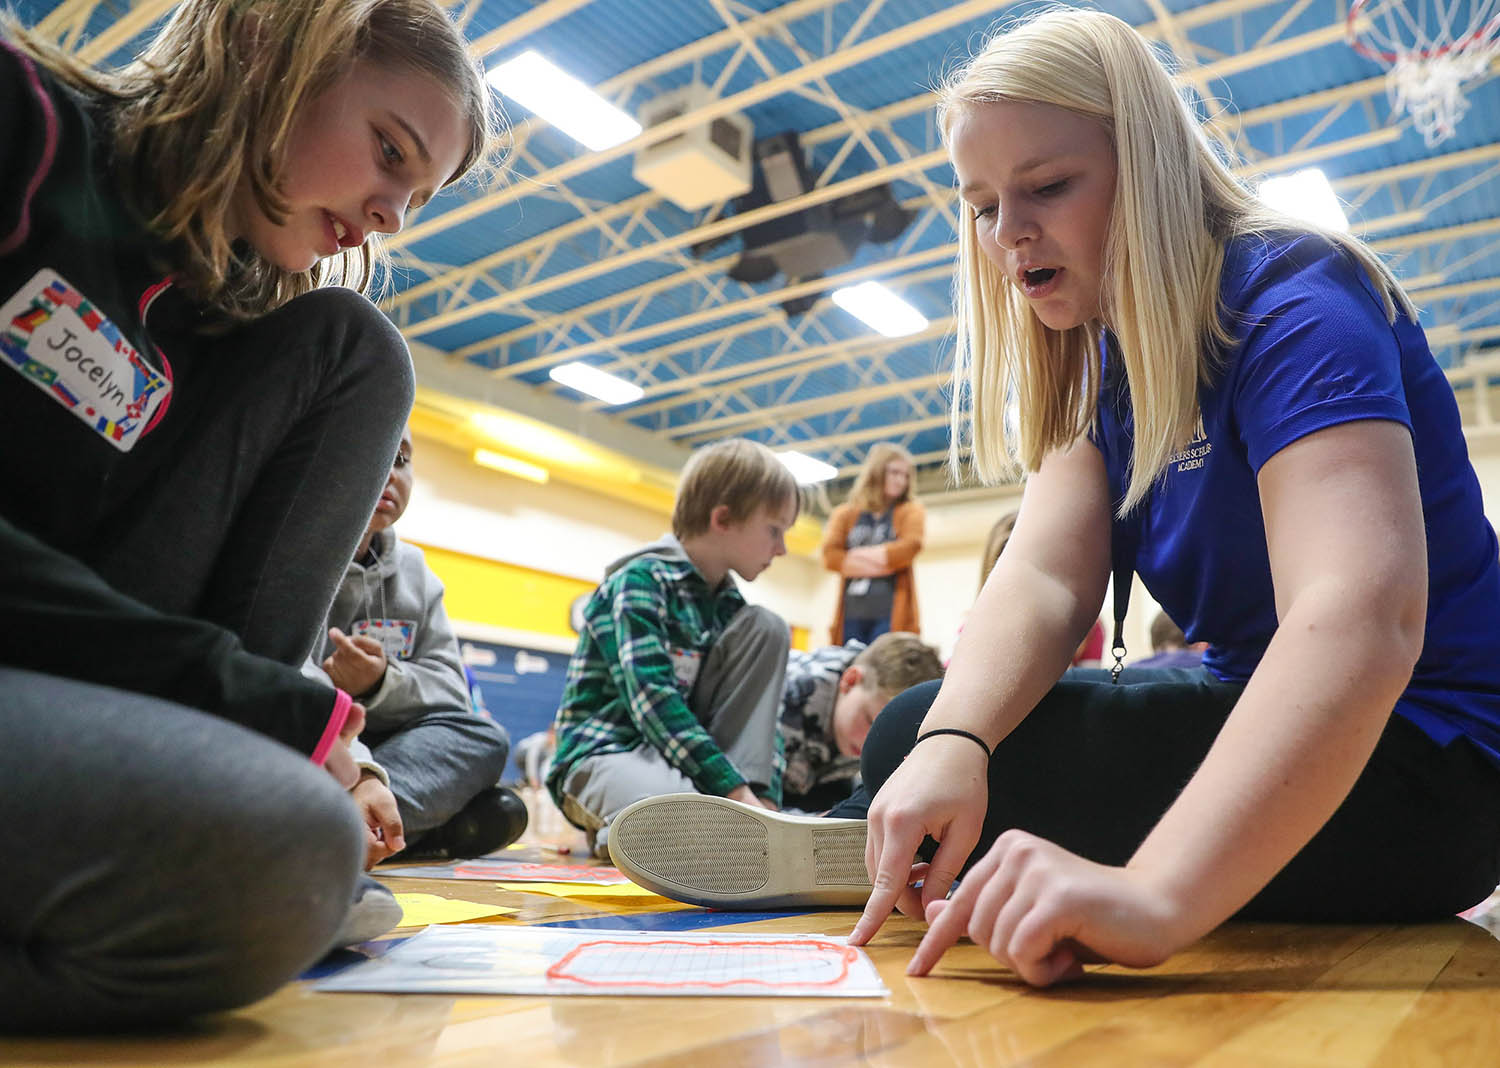 Shelby Pocock of Kearney, right, a member of UNK's Teachers Scholars Academy, works with students at Windy Hills Elementary School during a Measurement Olympics event last December. (Photo by Corbey R. Dorsey, UNK Communications)